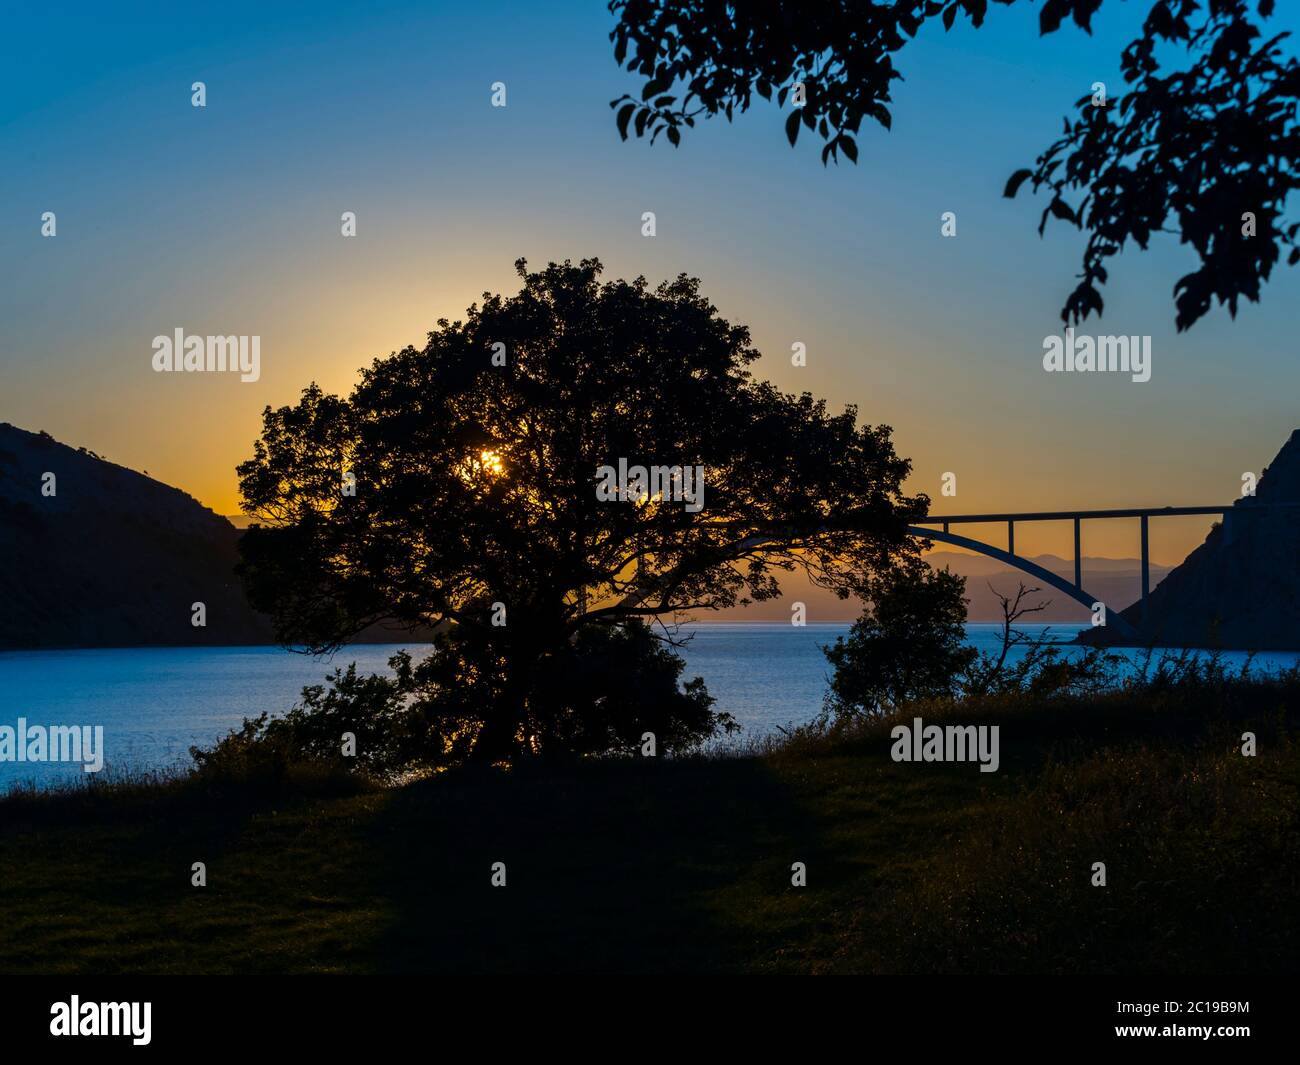 Sunset landscape bridge mainland to island Krk Croatia see view through dominant tree Stock Photo